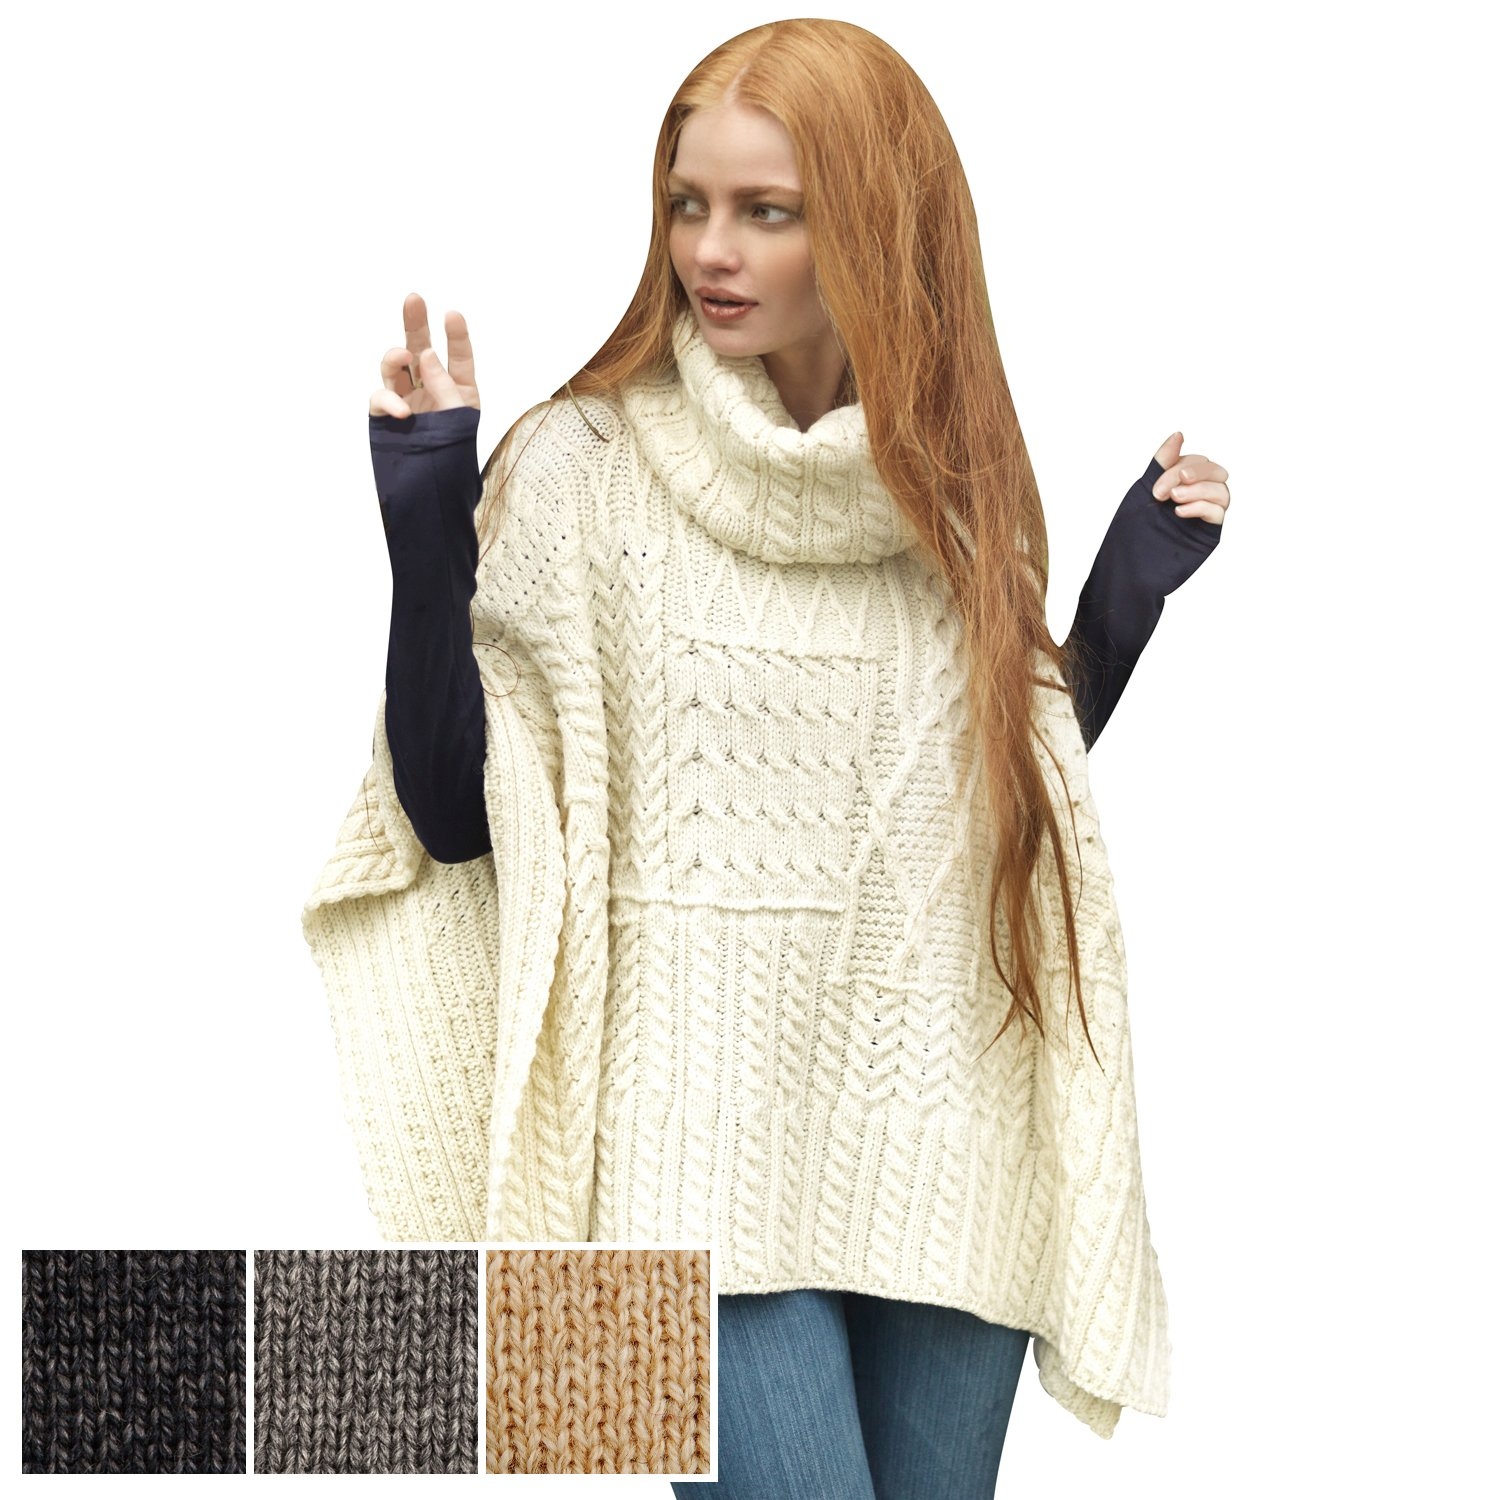 Carraig Donn 100% Irish Merino Wool Patchwork Aran Cowl Cape.